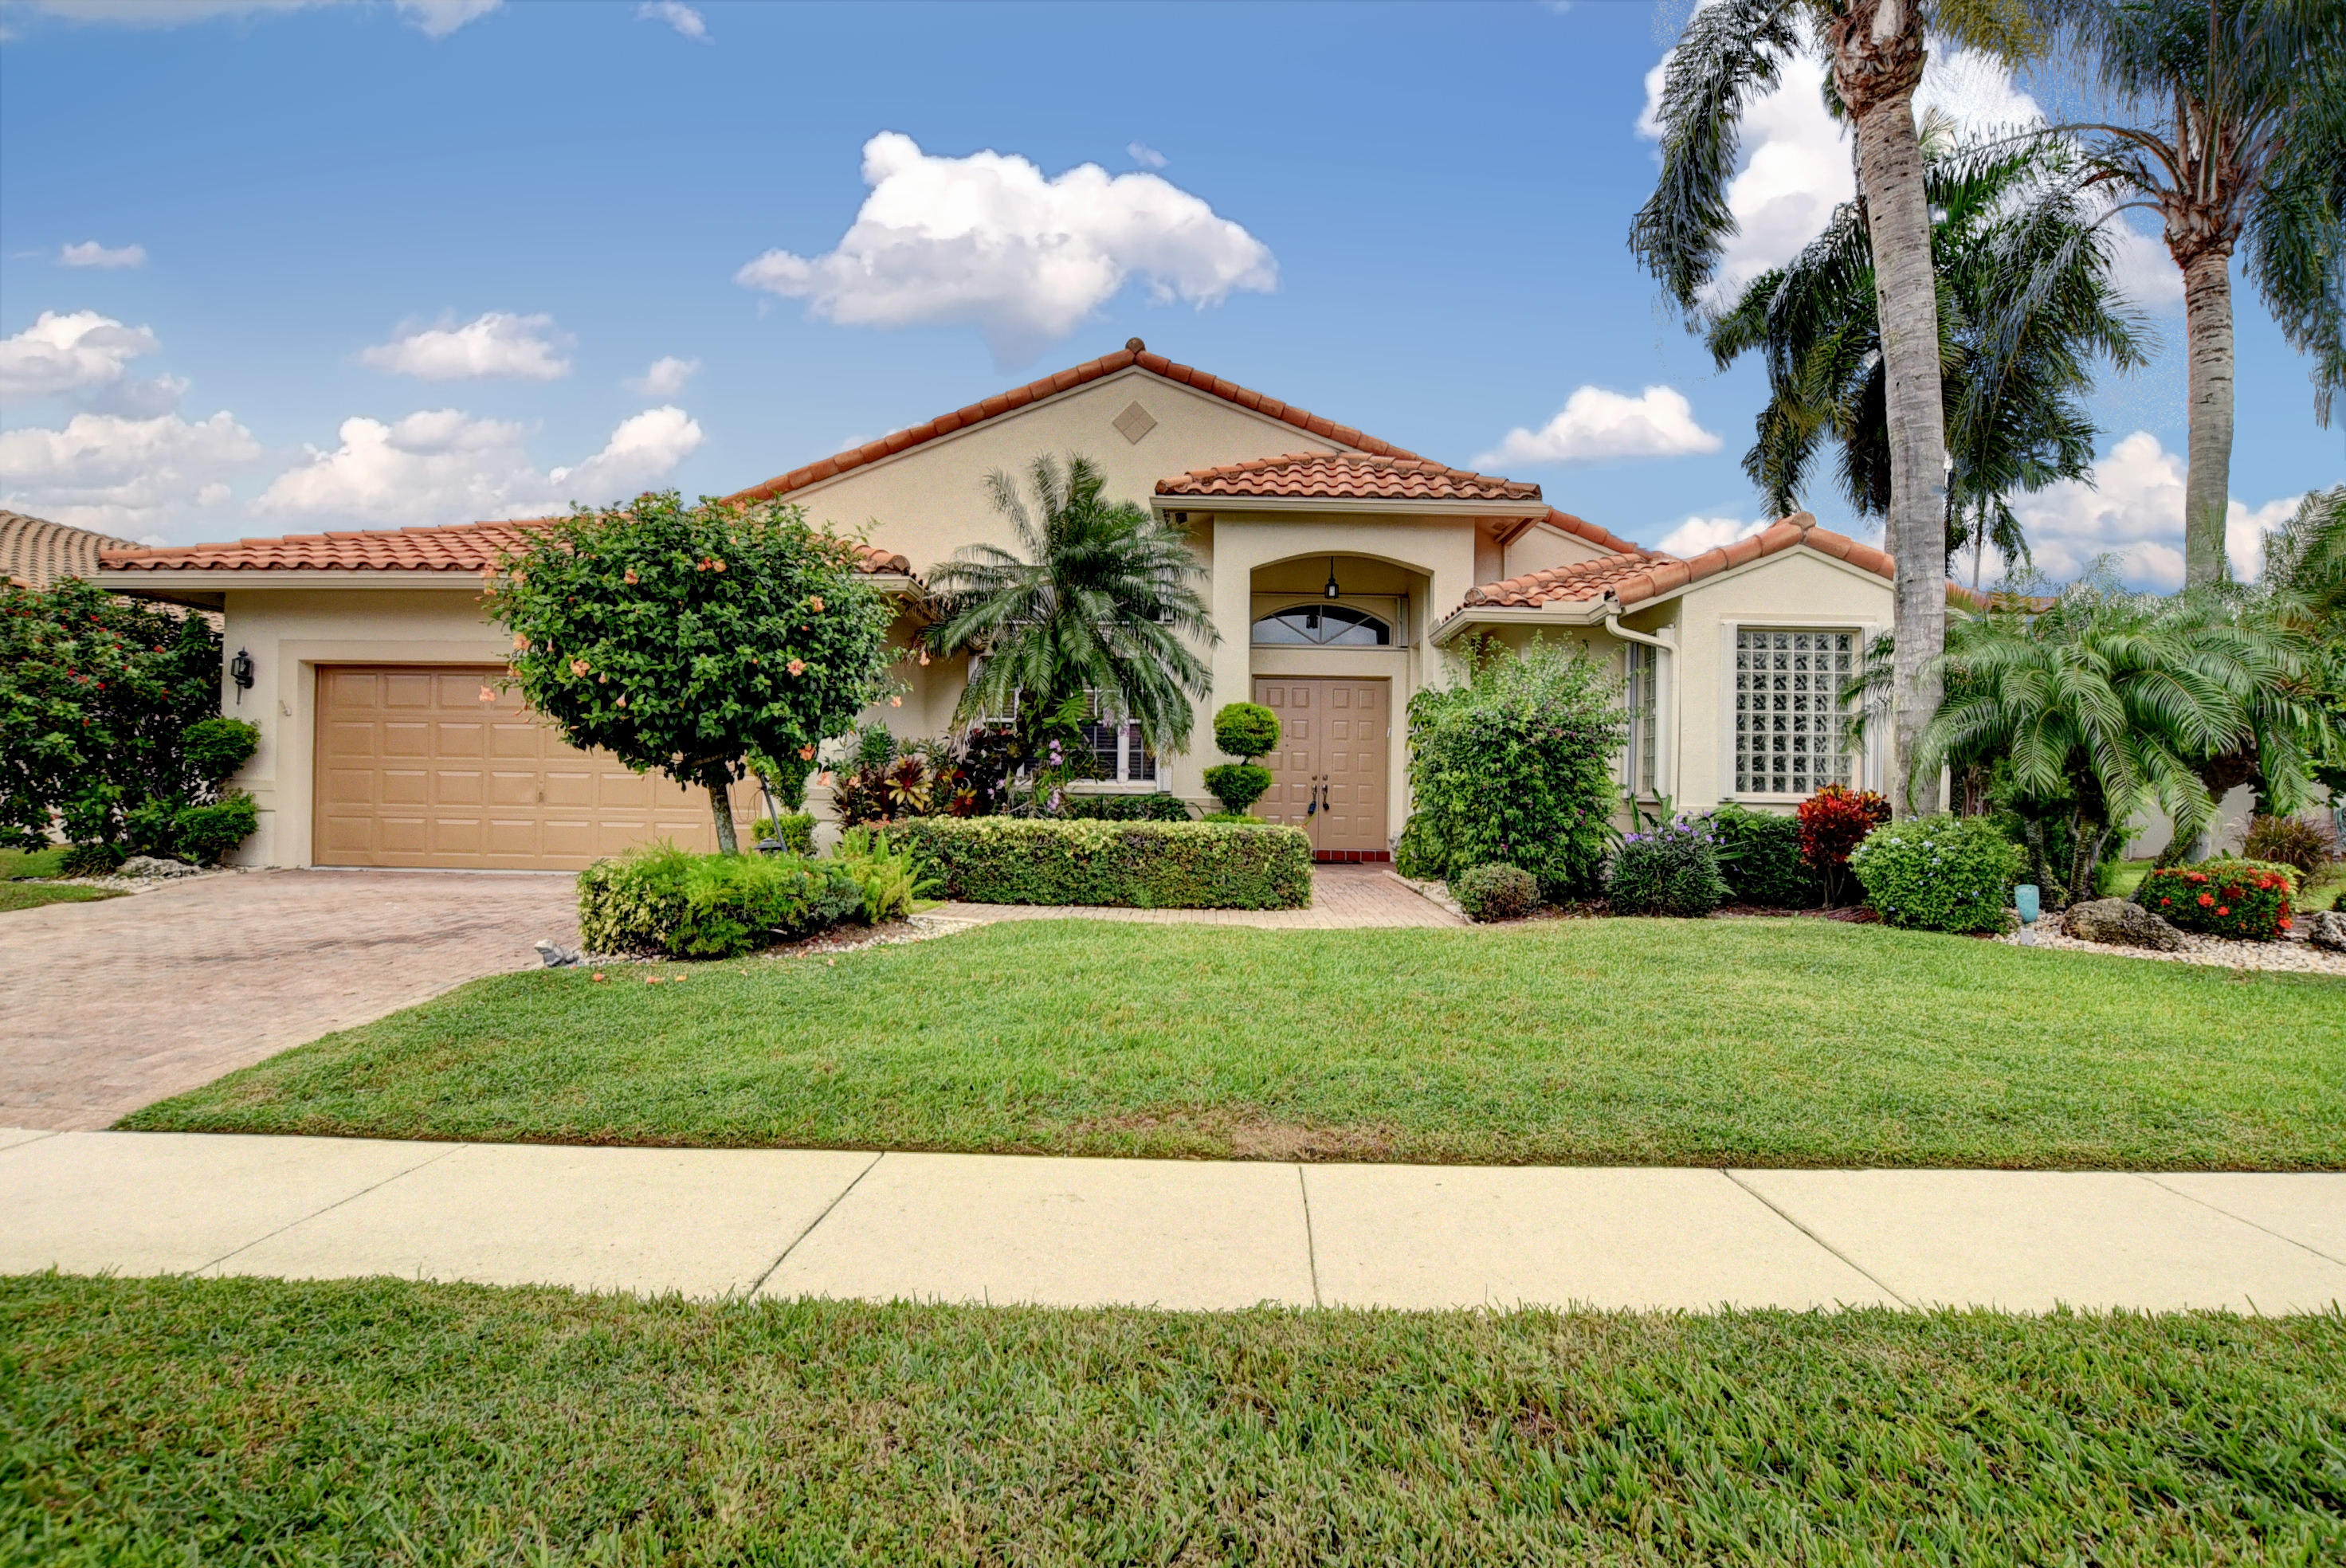 Home for sale in Cascades Boynton Beach Florida